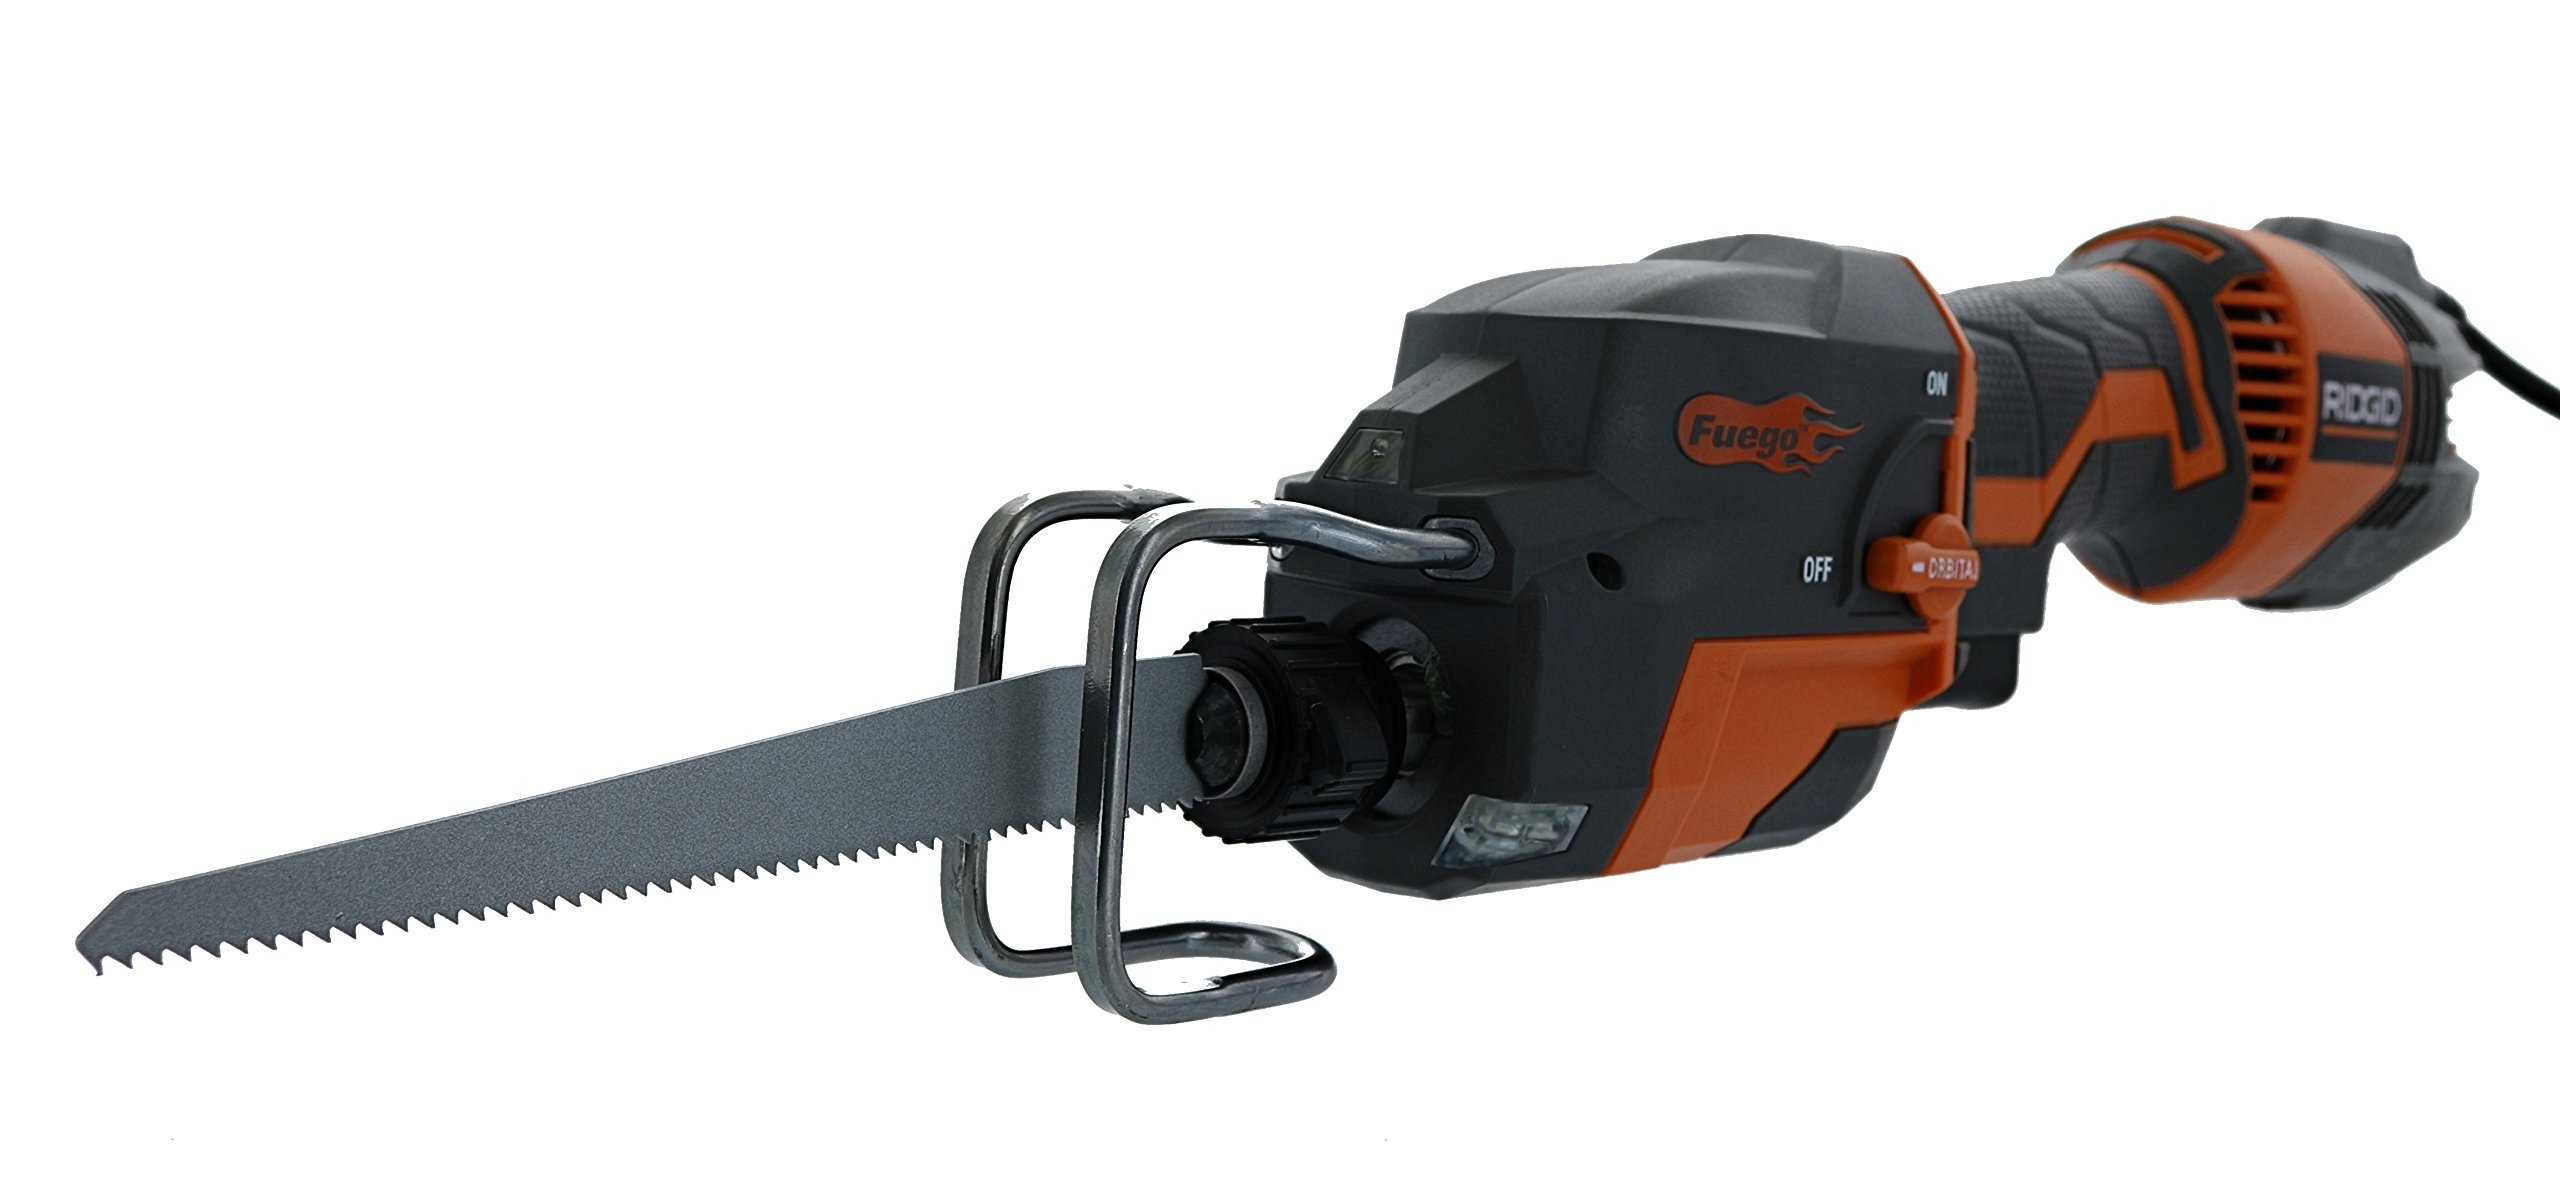 Ridgid R3031 Fuego Corded 3,500 SPM 6 Amp Compact One-Handed Reciprocating Saw (Bare Tool Only) (Certified Refurbished)